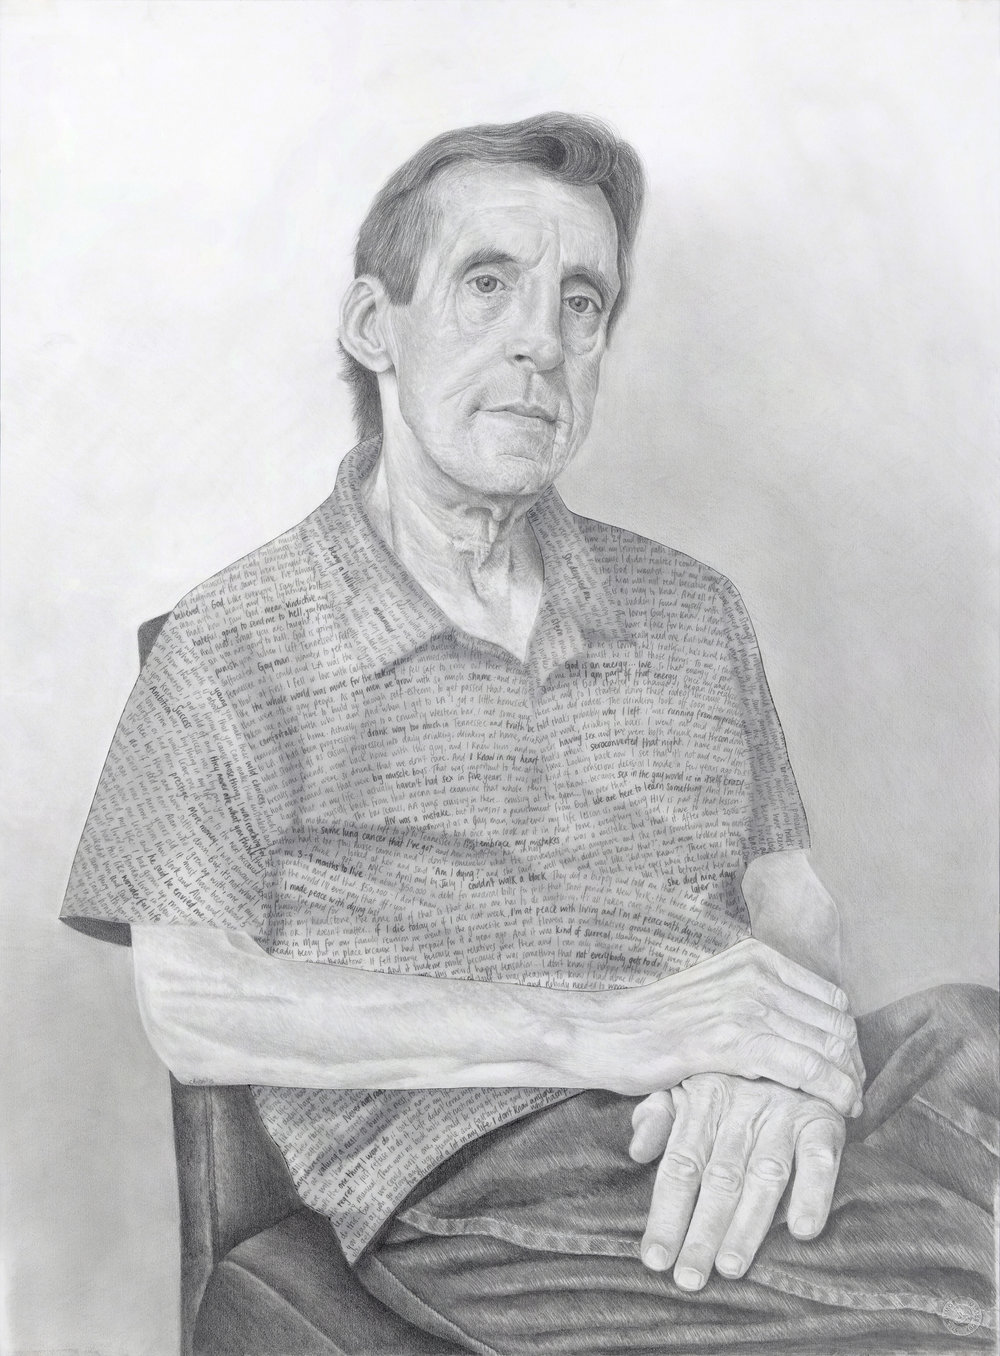 """Randy - Pencil on drawing and tissue papers - 30"""" x 22"""" - 2015"""